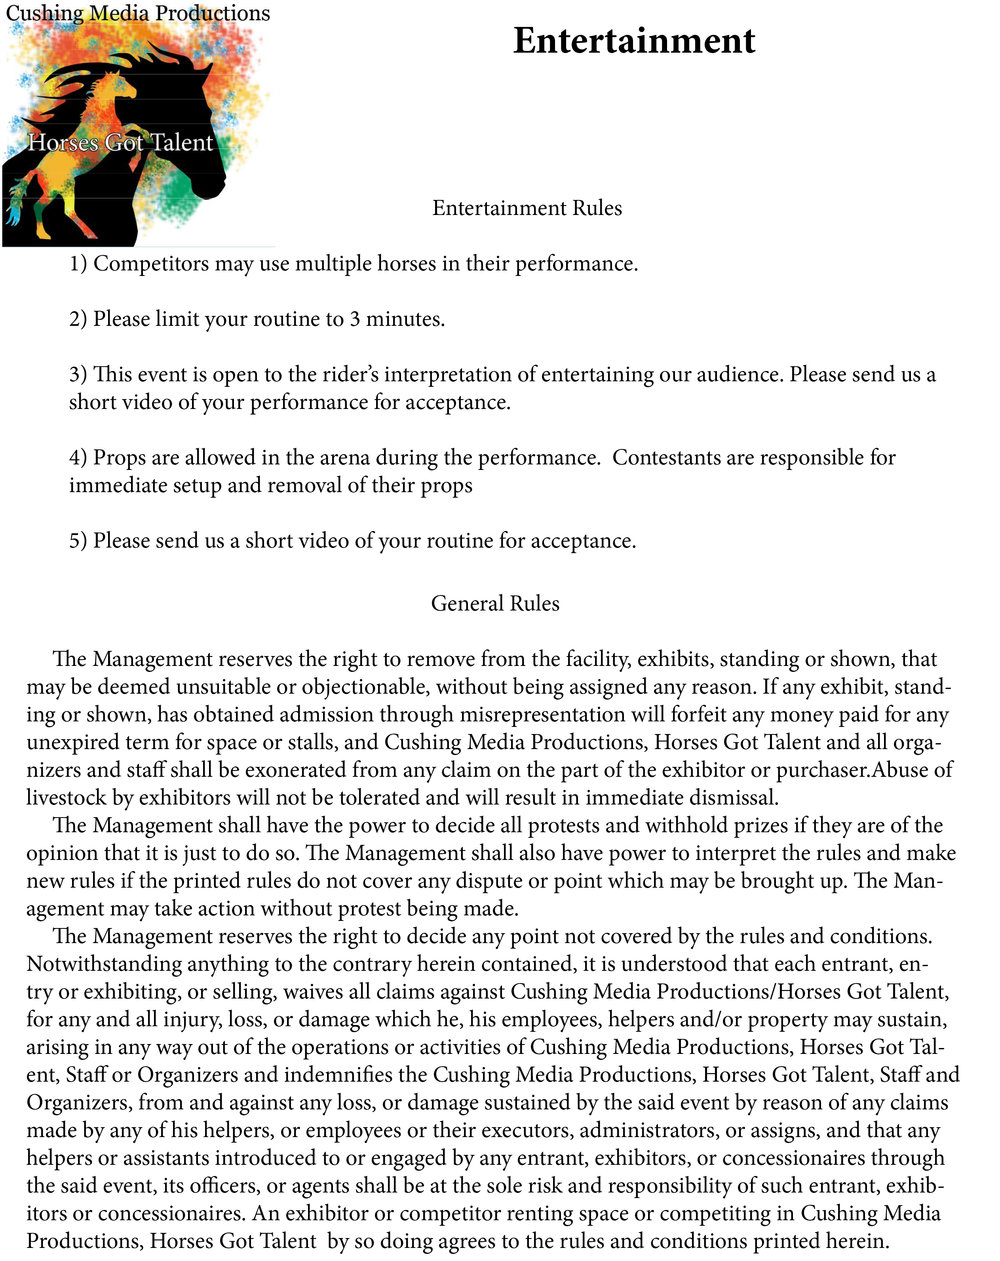 2017 Horses GOt Talent Entertainment and General Rules.jpg